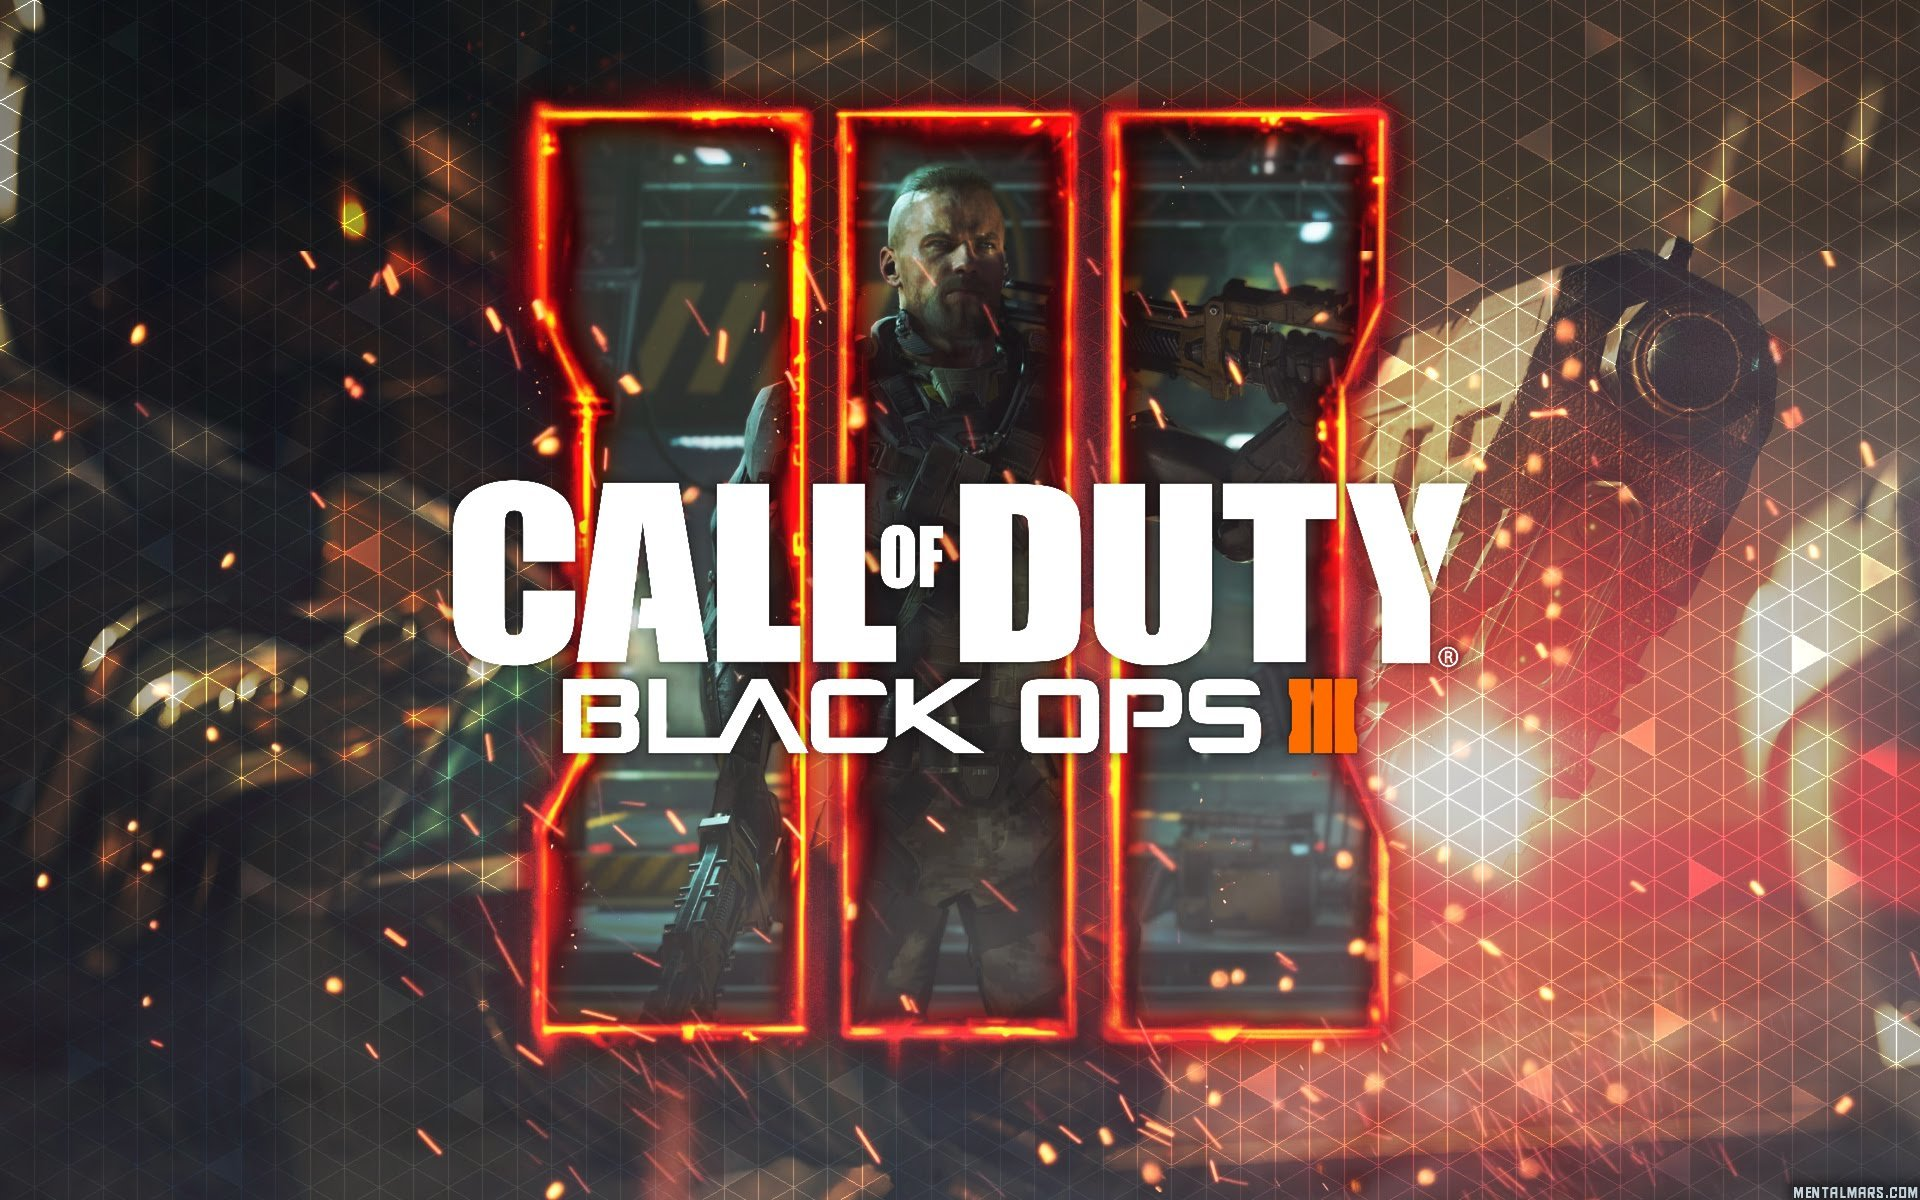 Call Of Duty Black Ops 3 Wallpapers Hd For Desktop Backgrounds